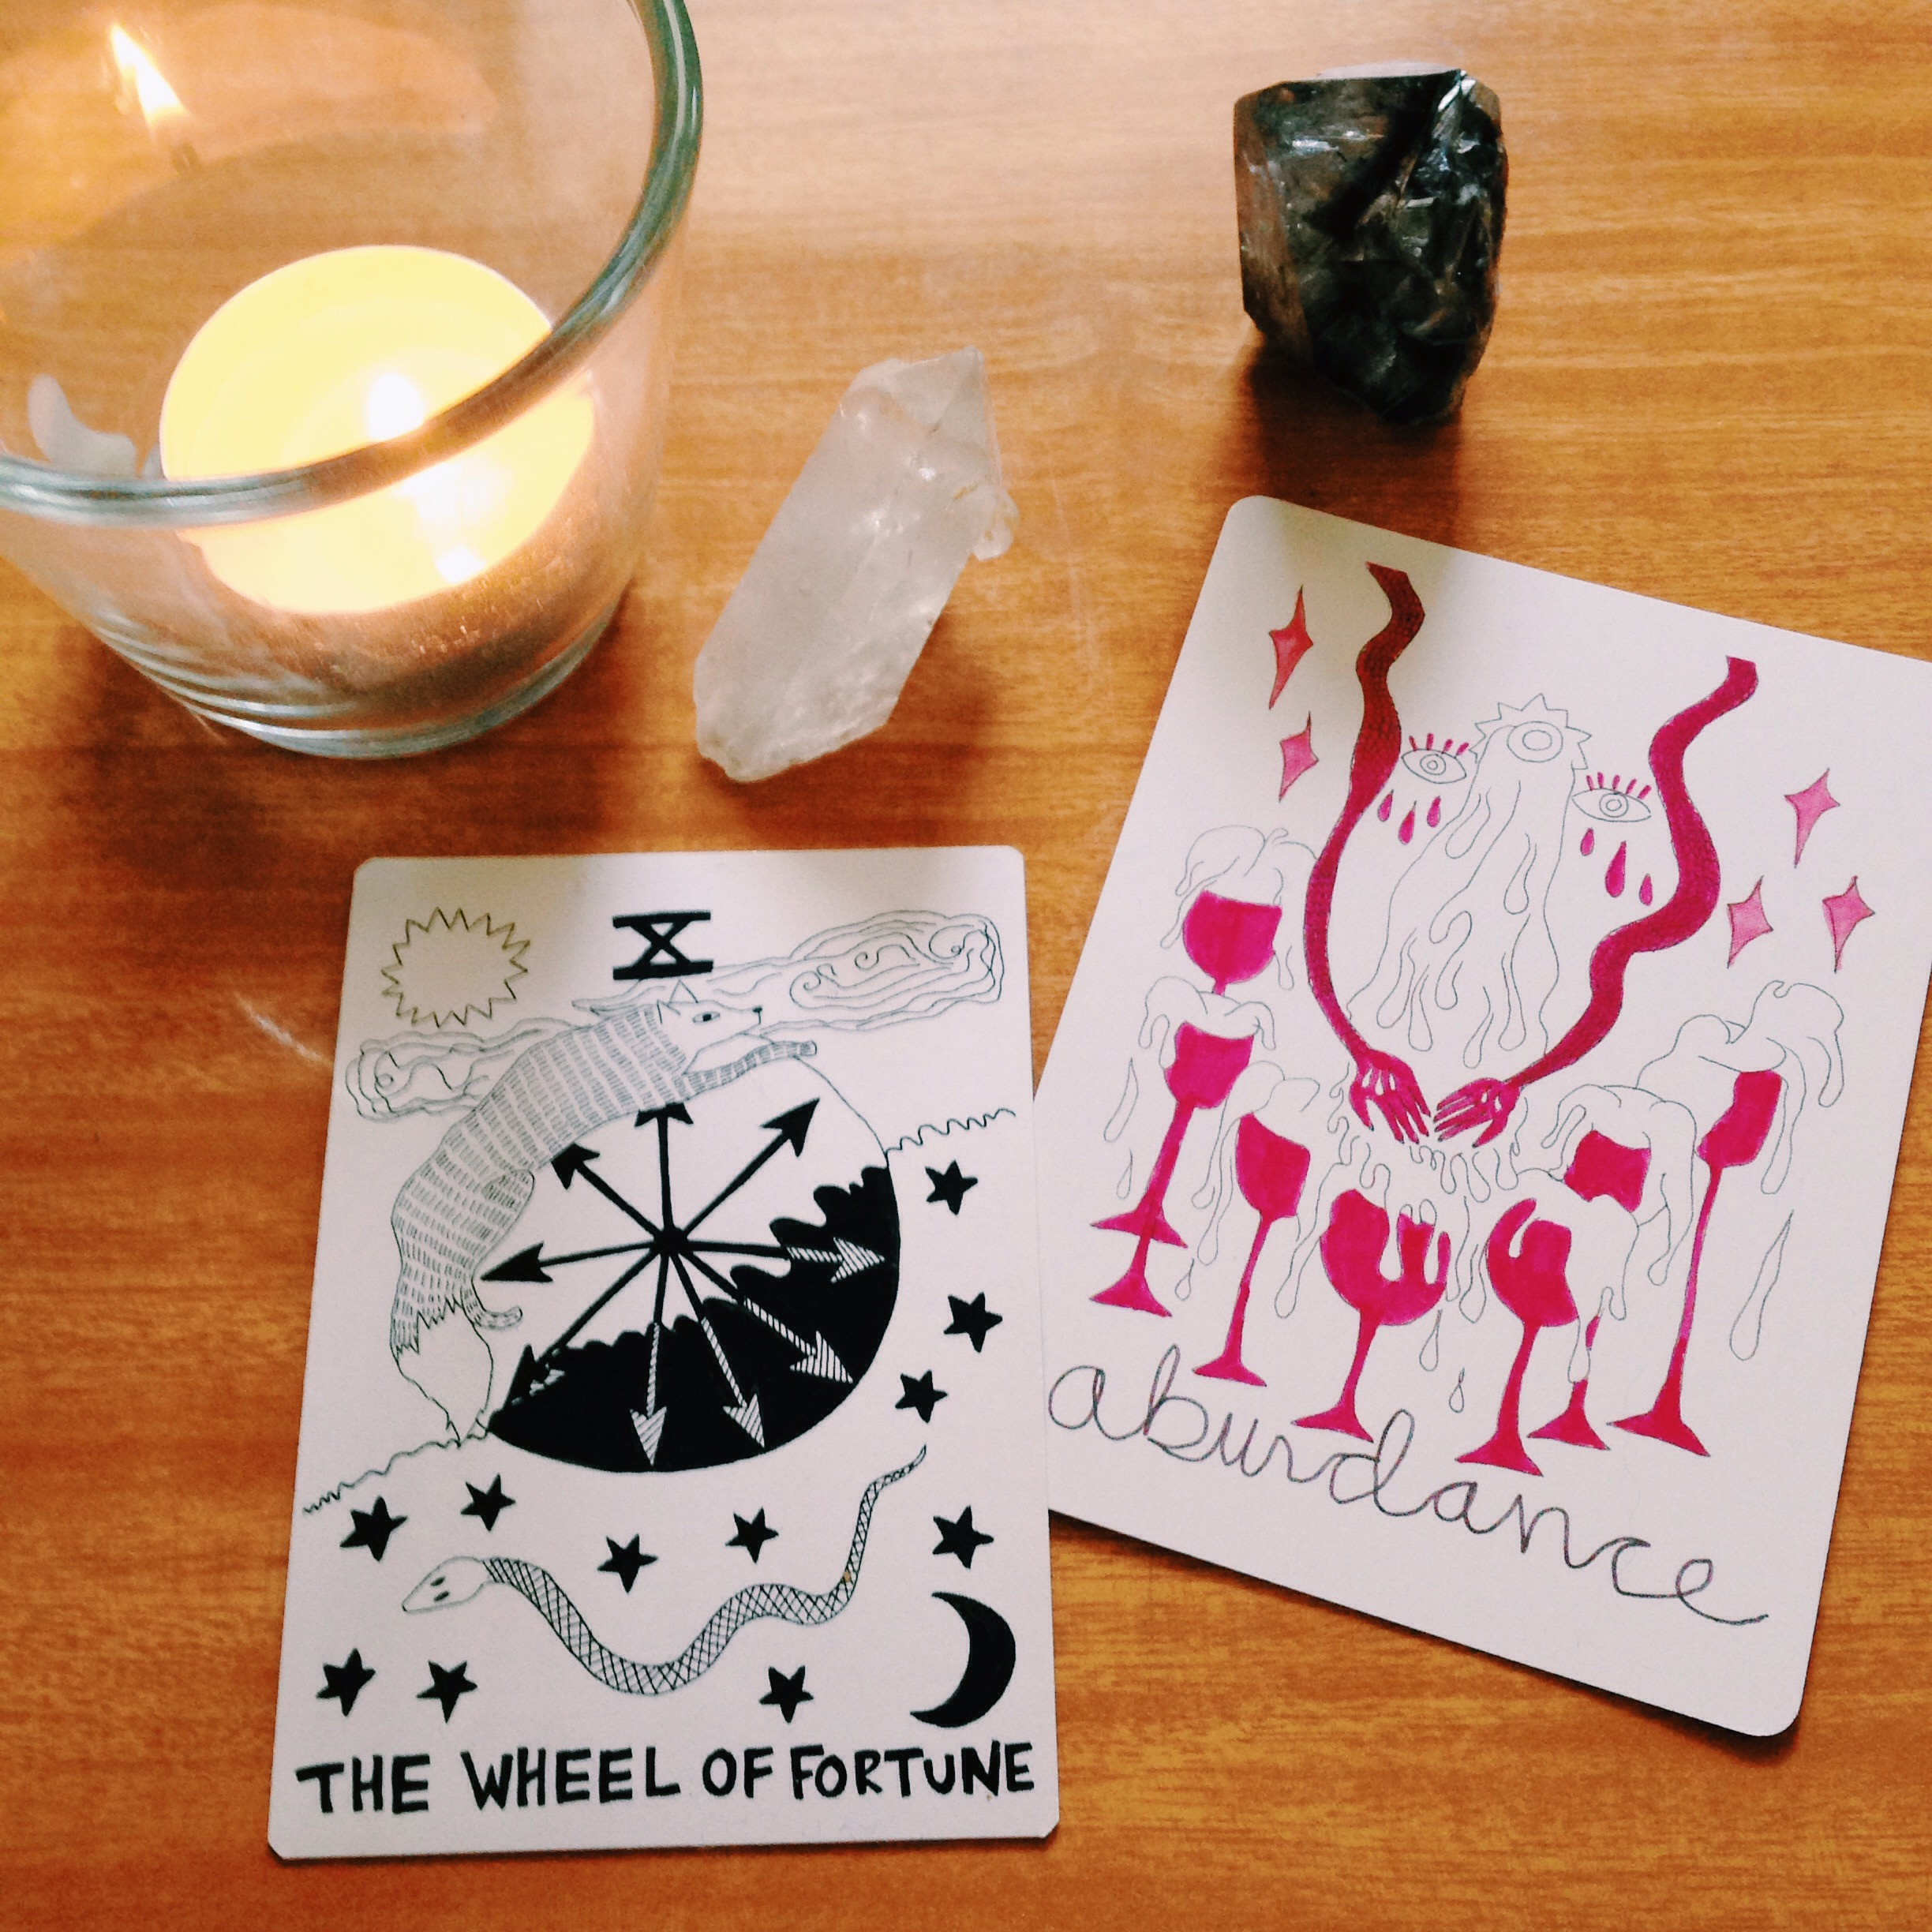 Learn tarot - Looking for tarot tools and resources to support your journey?Check out the blog, or download a freebie. You can also become a patron to access exclusive tarot spreads, lessons, forecasts, and more!